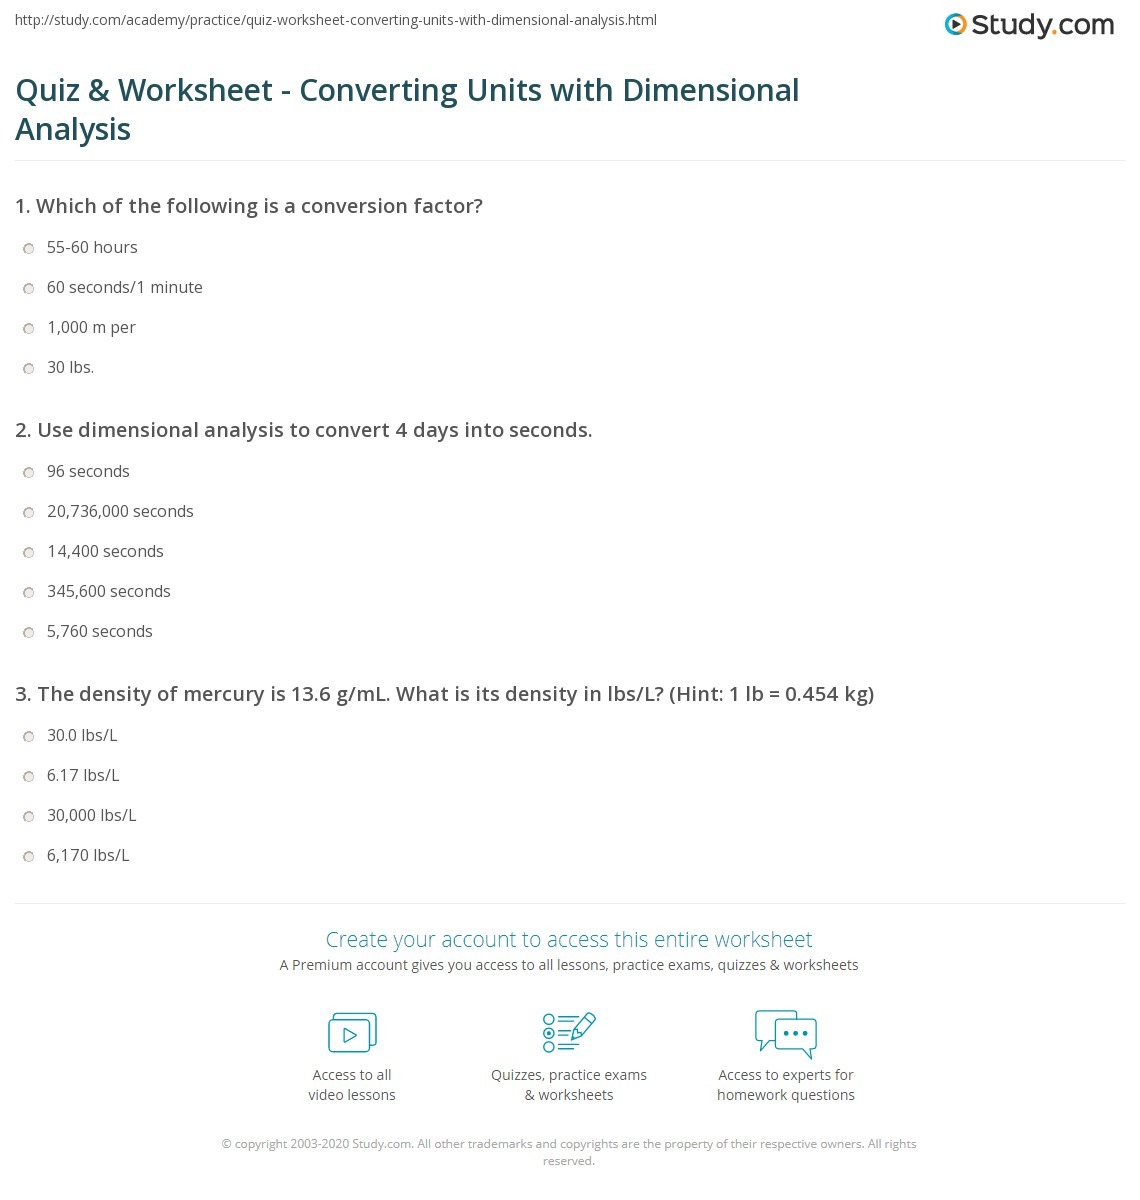 Quiz Worksheet Converting Units With Dimensional Analysis